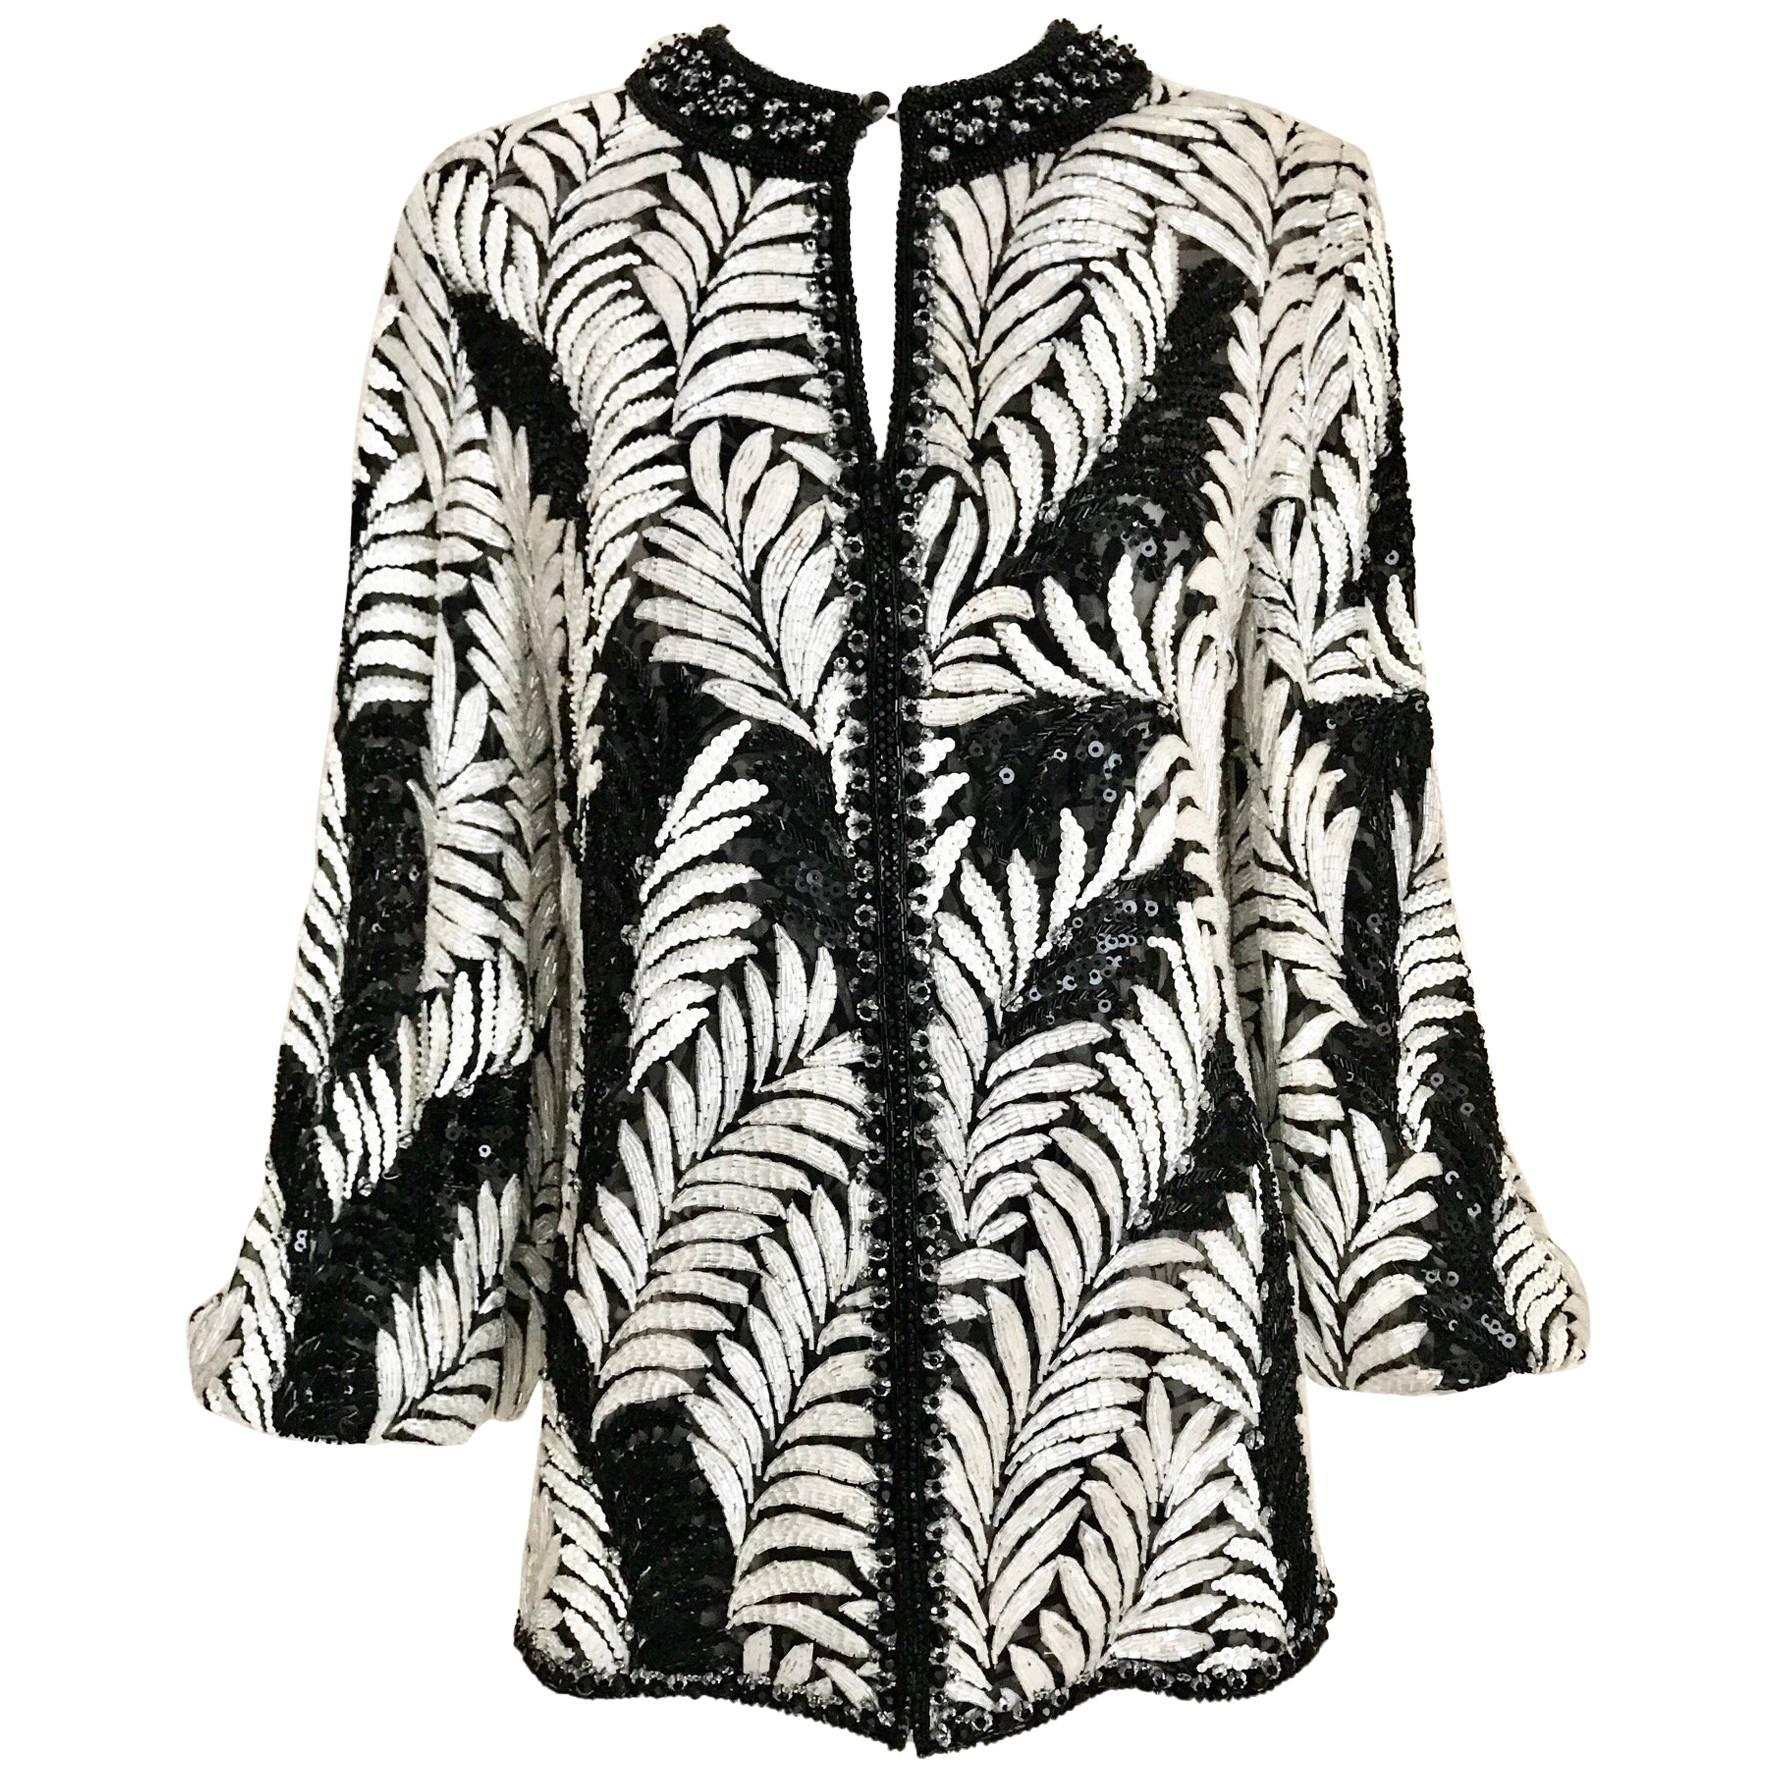 Galanos Black and White Leaf Motif Beaded Jacket, 1980s